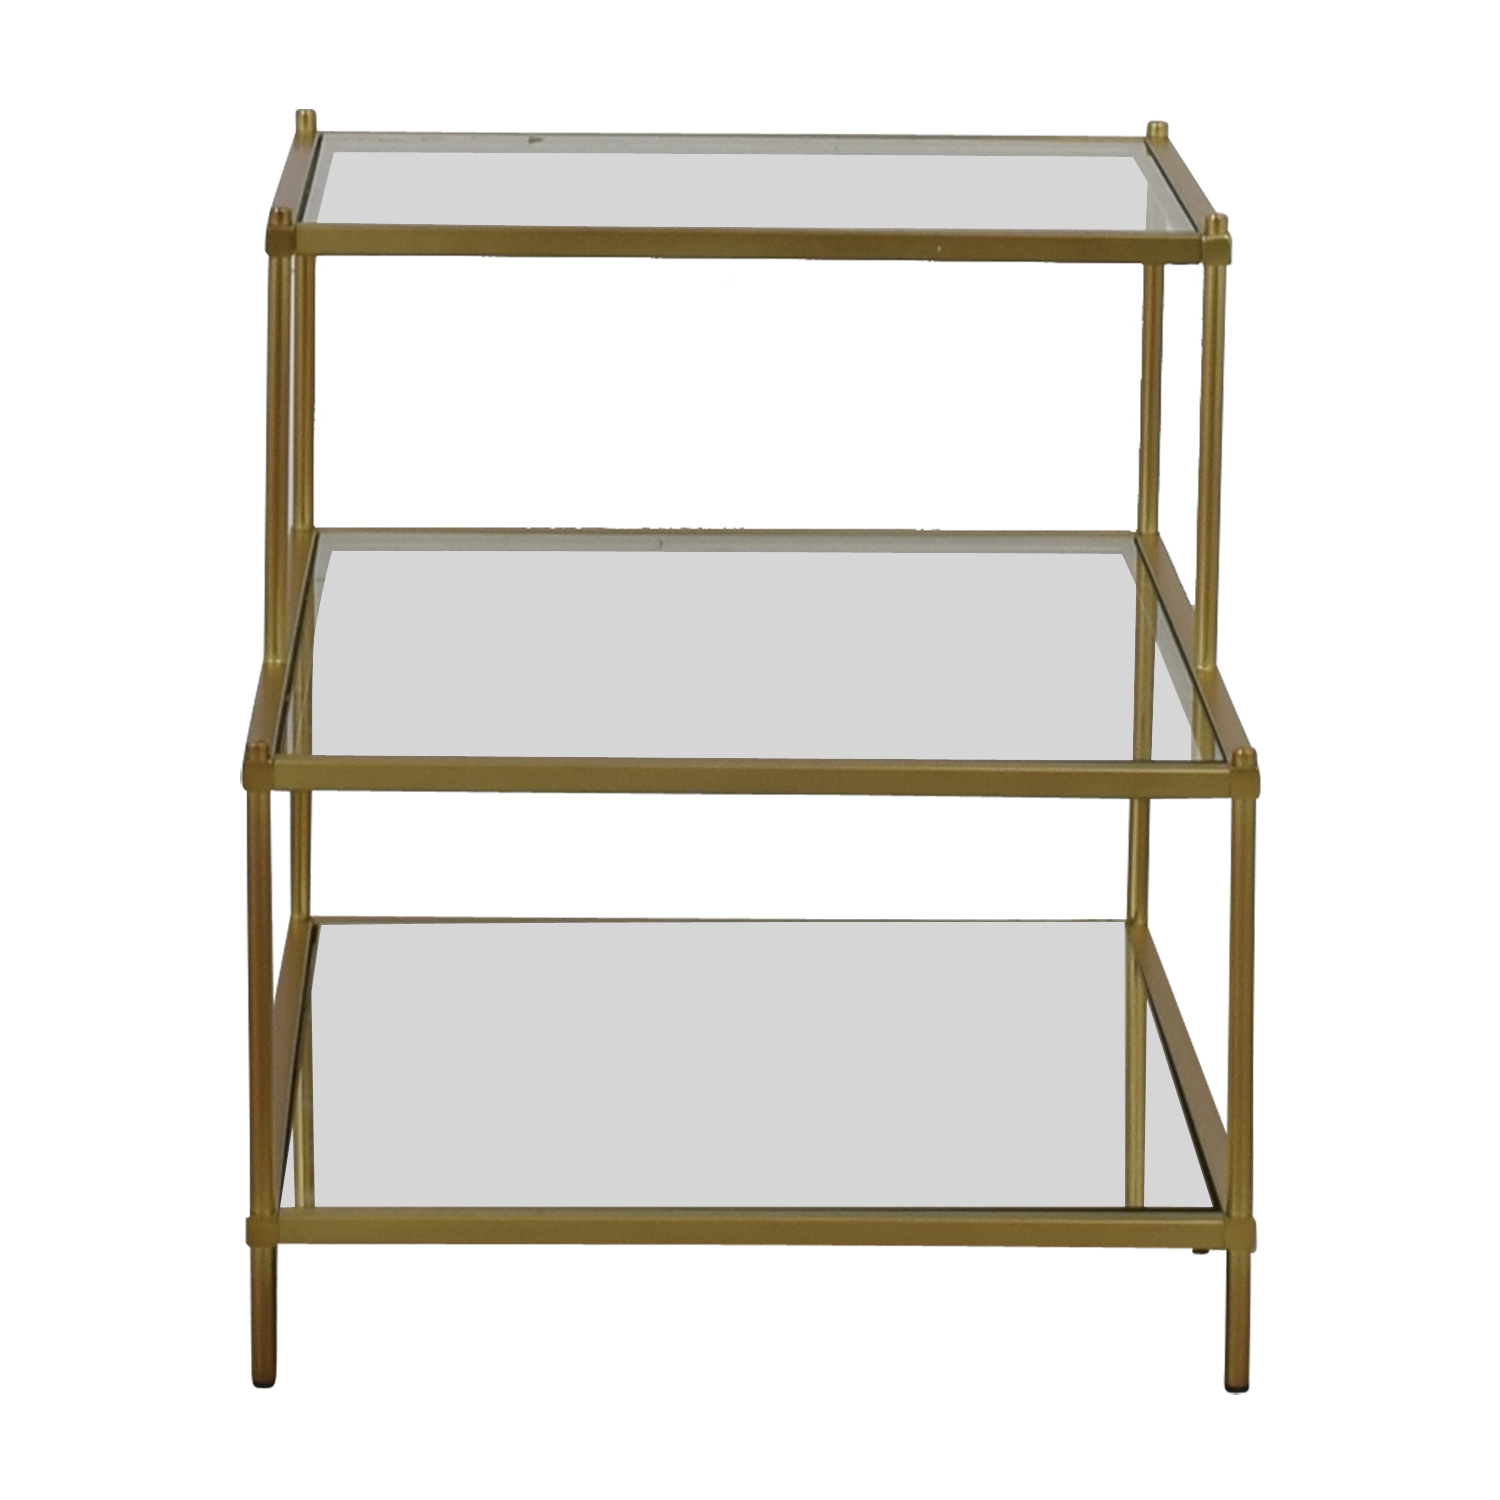 West Elm West Elm Terrace Antique Brass and Glass Nightstand nyc